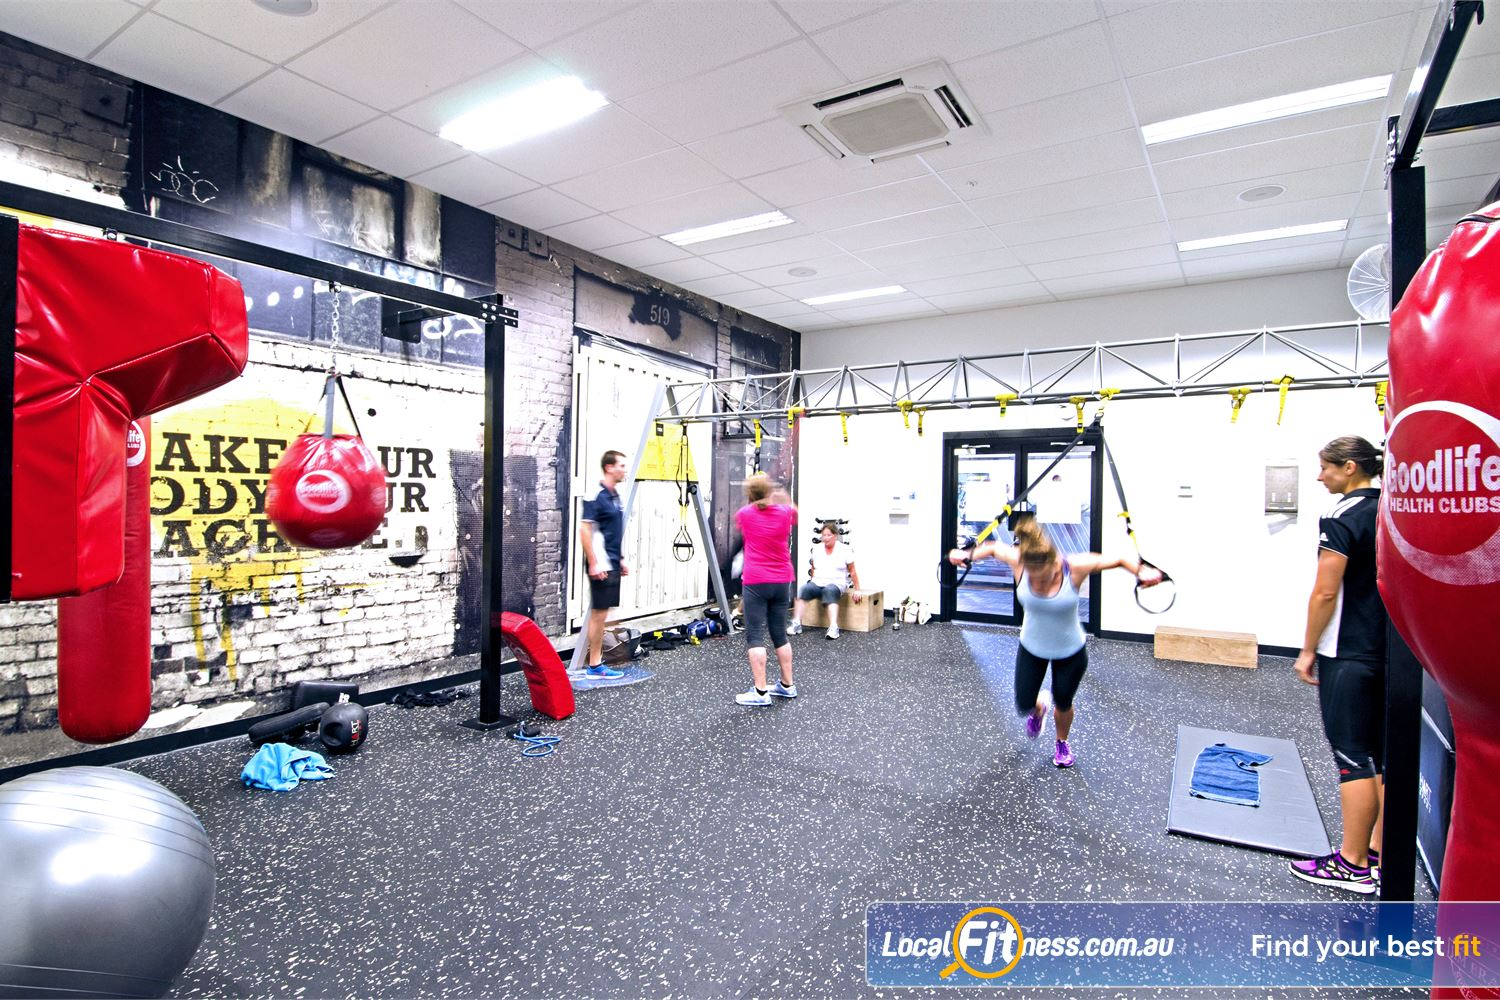 Goodlife Health Clubs Near Tennyson Our team can design a functional workout that challenges you inc. TRX training.